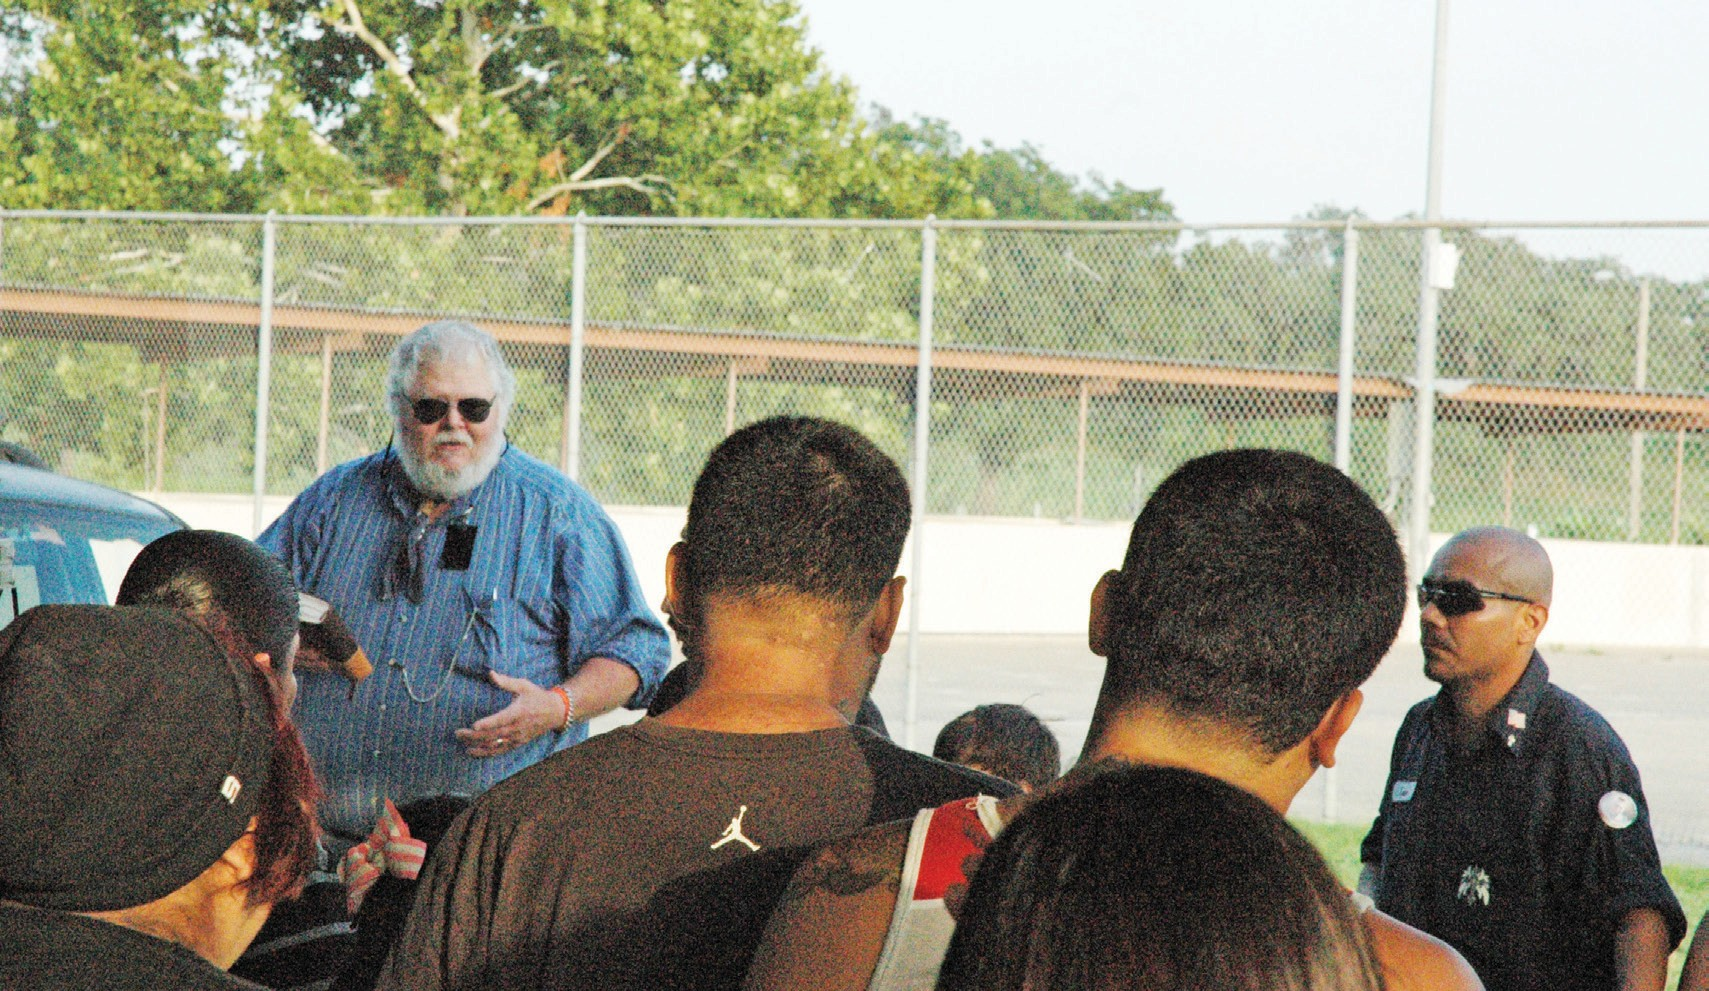 Kenneth Montgomery (left) offers prayers and comforting words to the families and friends of those who were killed and those who are still missing. Coordinator for the the event was Louis Coronado (far right), uncle of slain victim Daniel Coronado Jr.